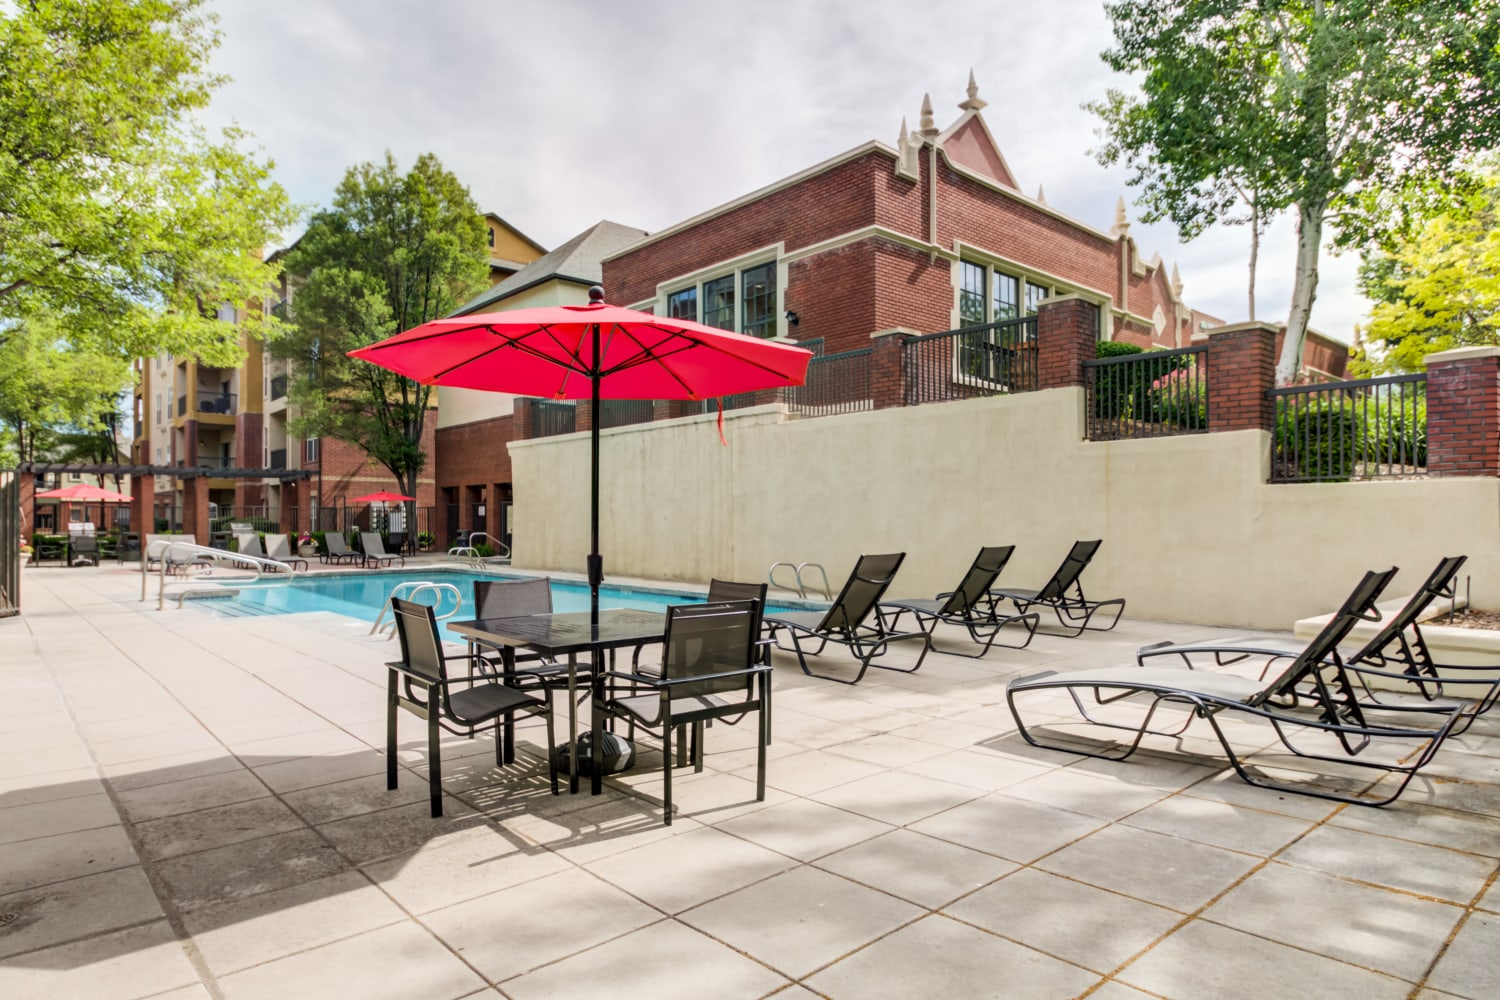 Lounge chairs and tables with umbrellas by community pool at Irving Schoolhouse Apartments in Salt Lake City, Utah